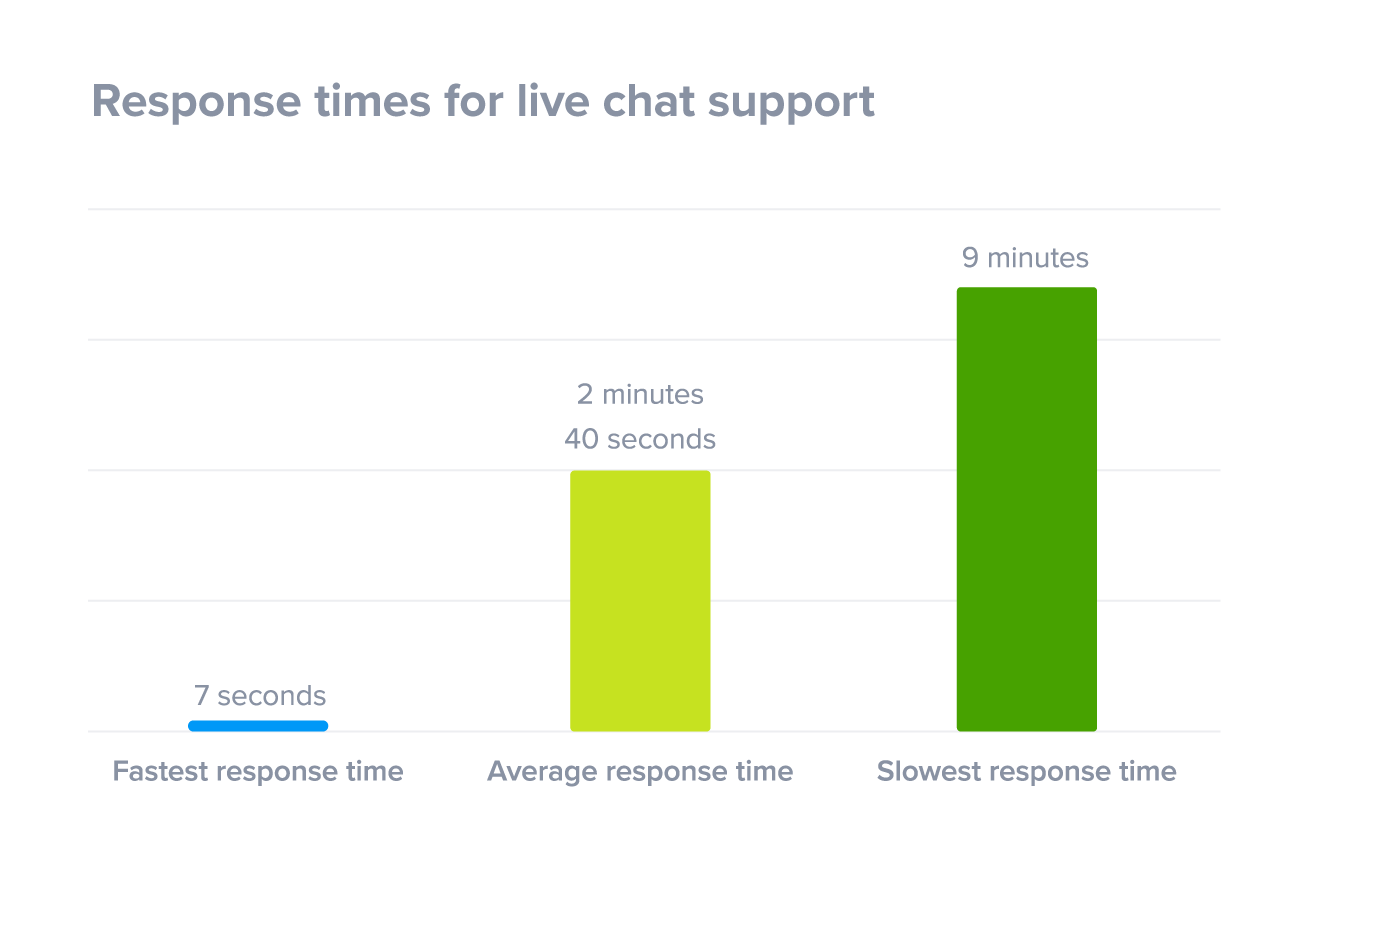 Live chat average response times